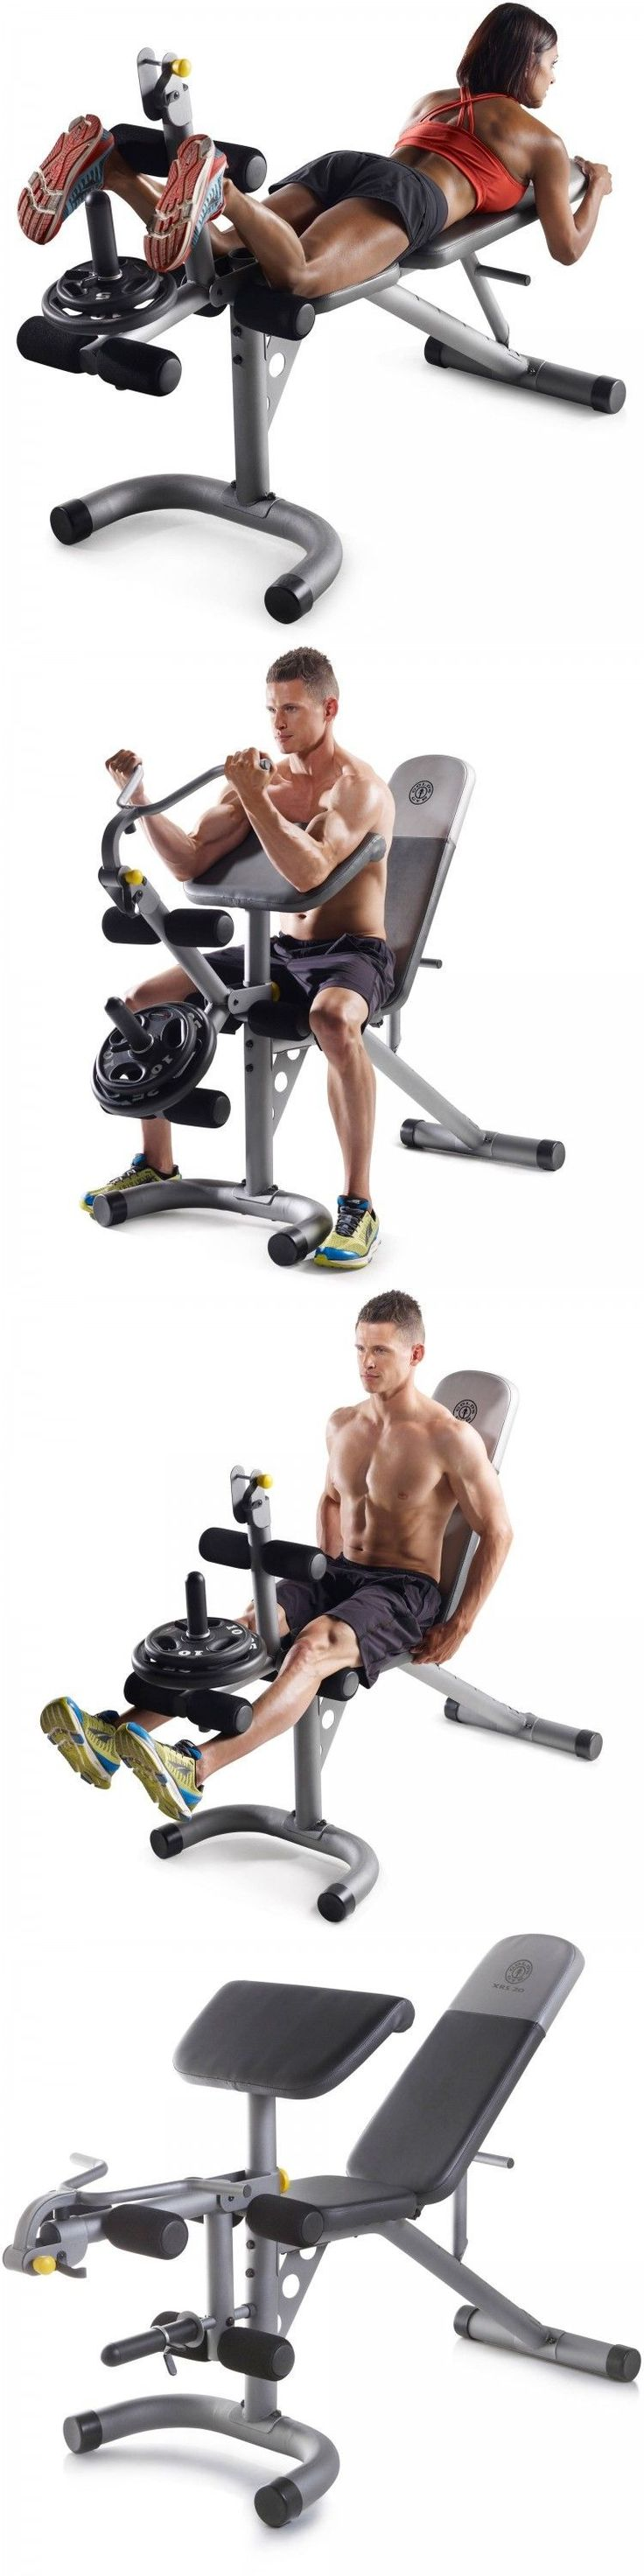 Weight Sets 179818: Weight Bench Set 300 Lb Home Olympic Gym Press Lifting Barbell Exercise All In 1 BUY IT NOW ONLY: $149.71